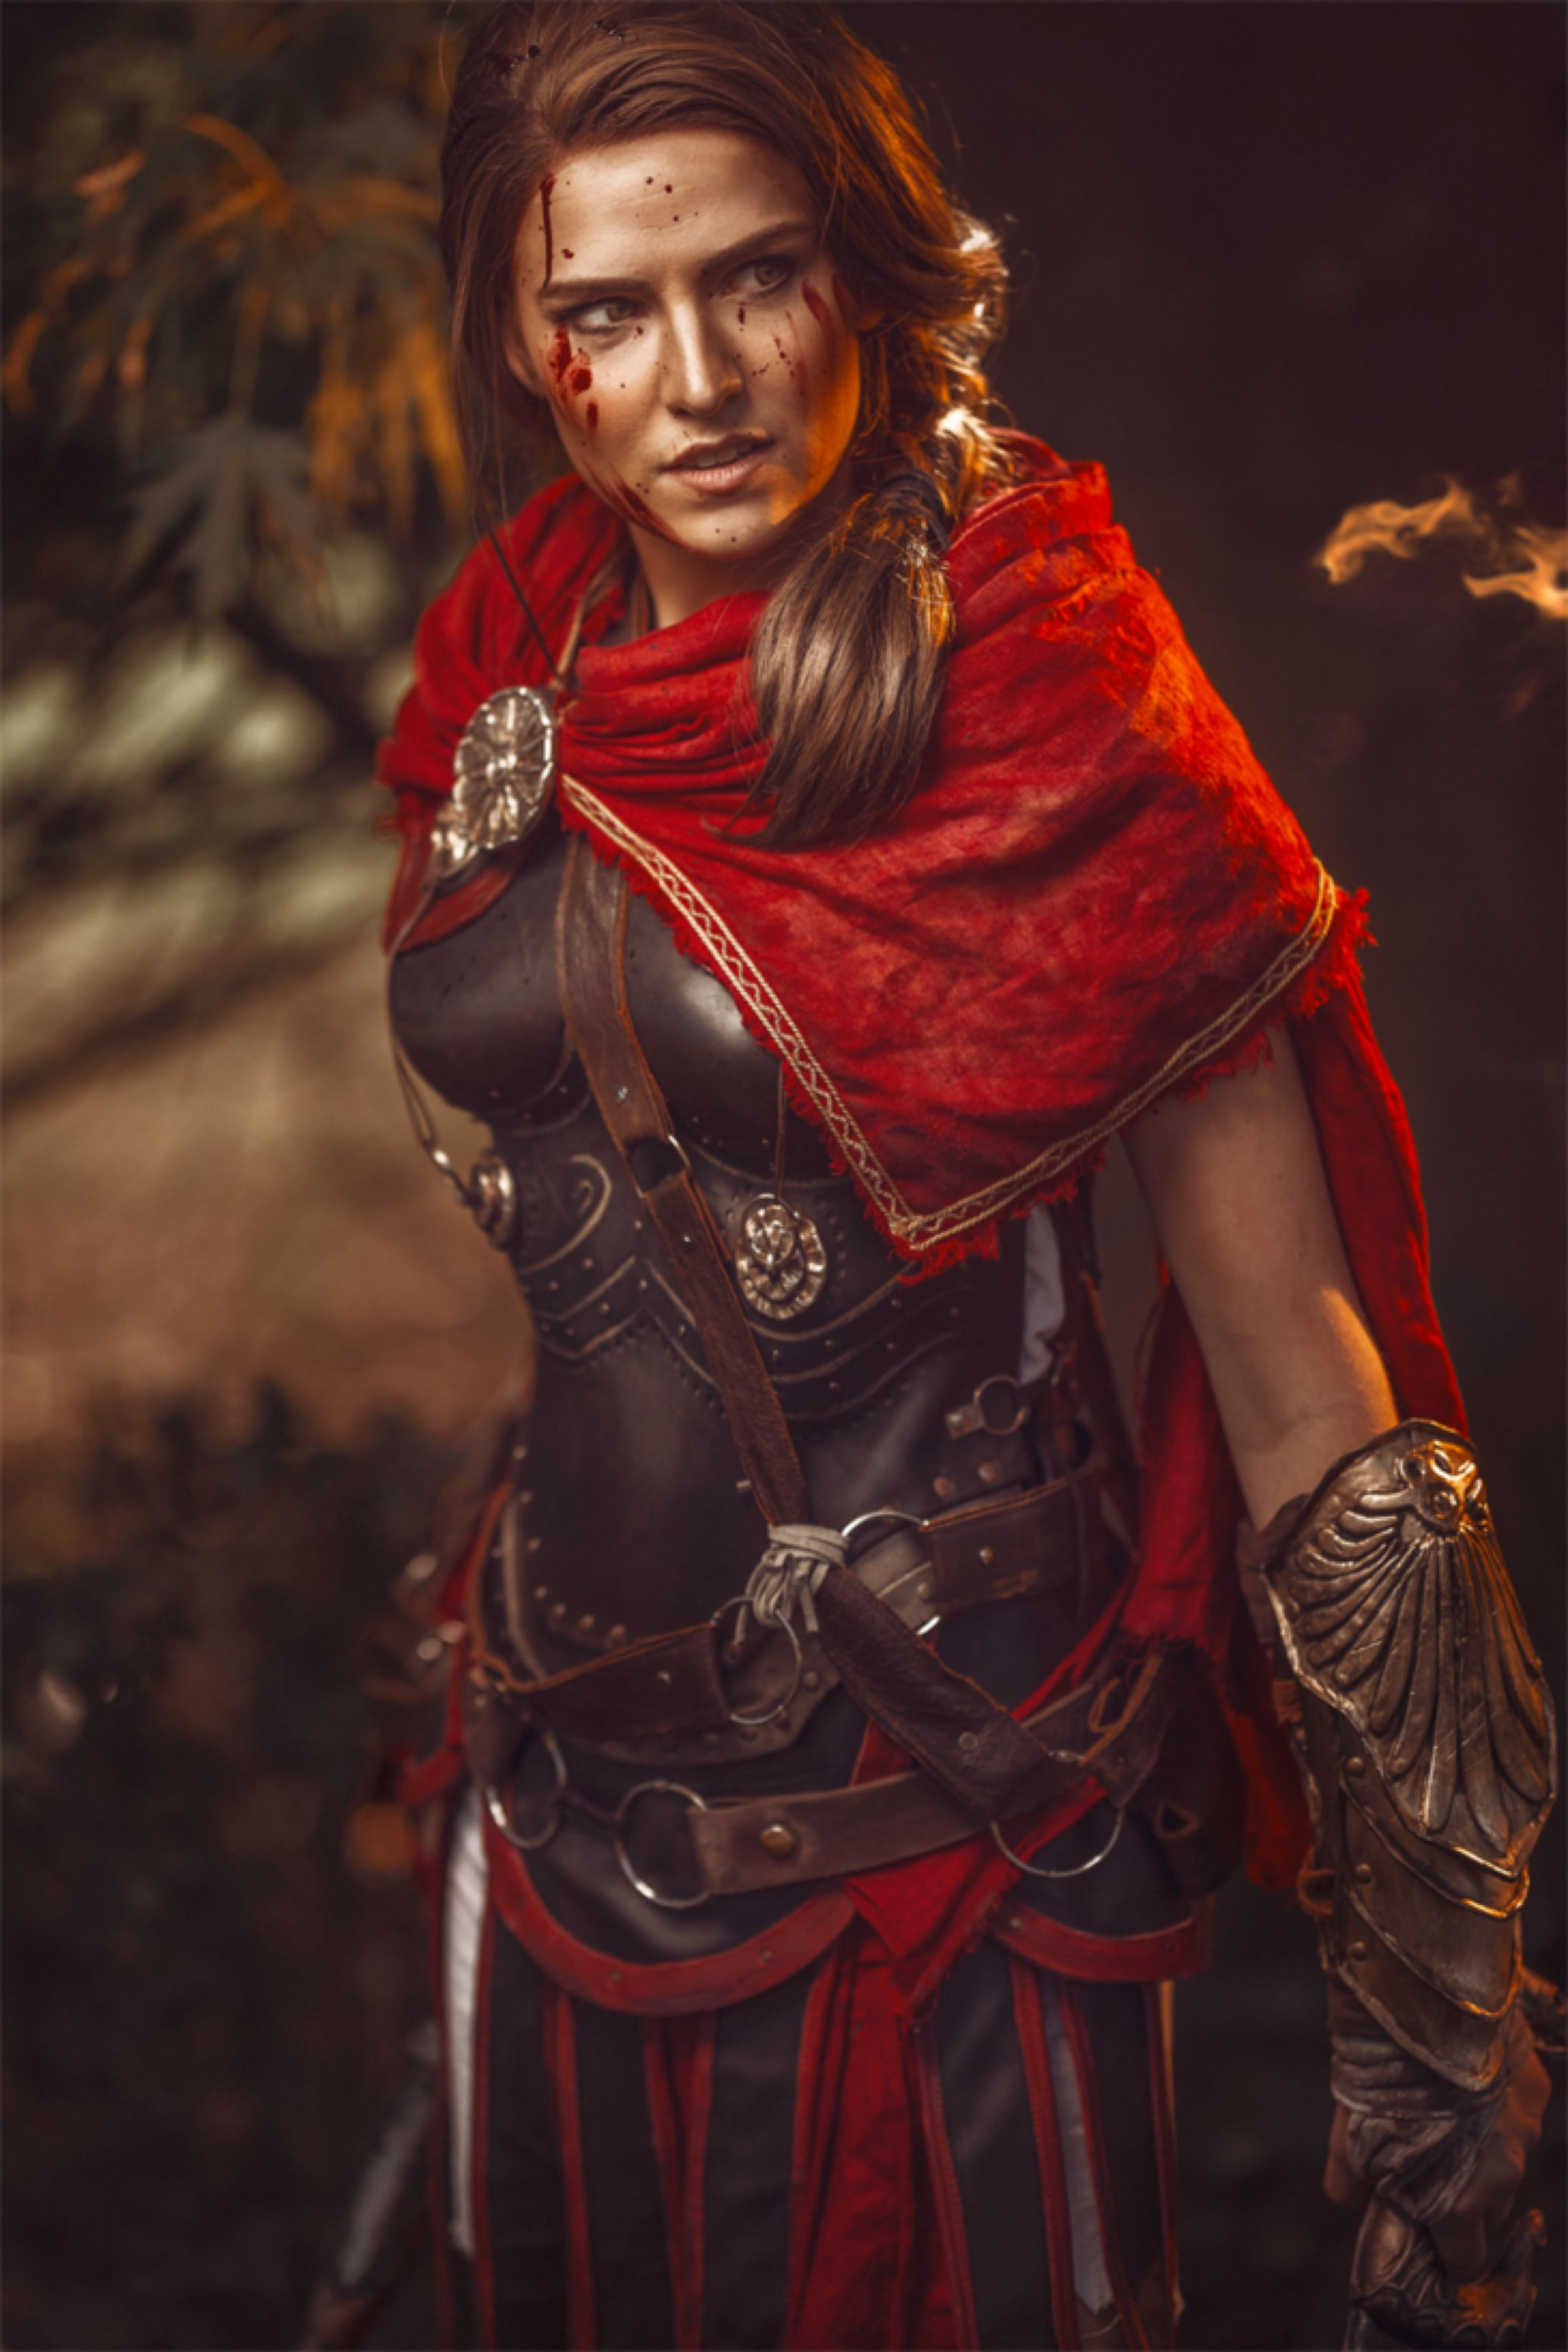 You Will Die Malaka By Msskunk On Deviantart Assassins Creed Cosplay Assassin S Creed Assassins Creed Art